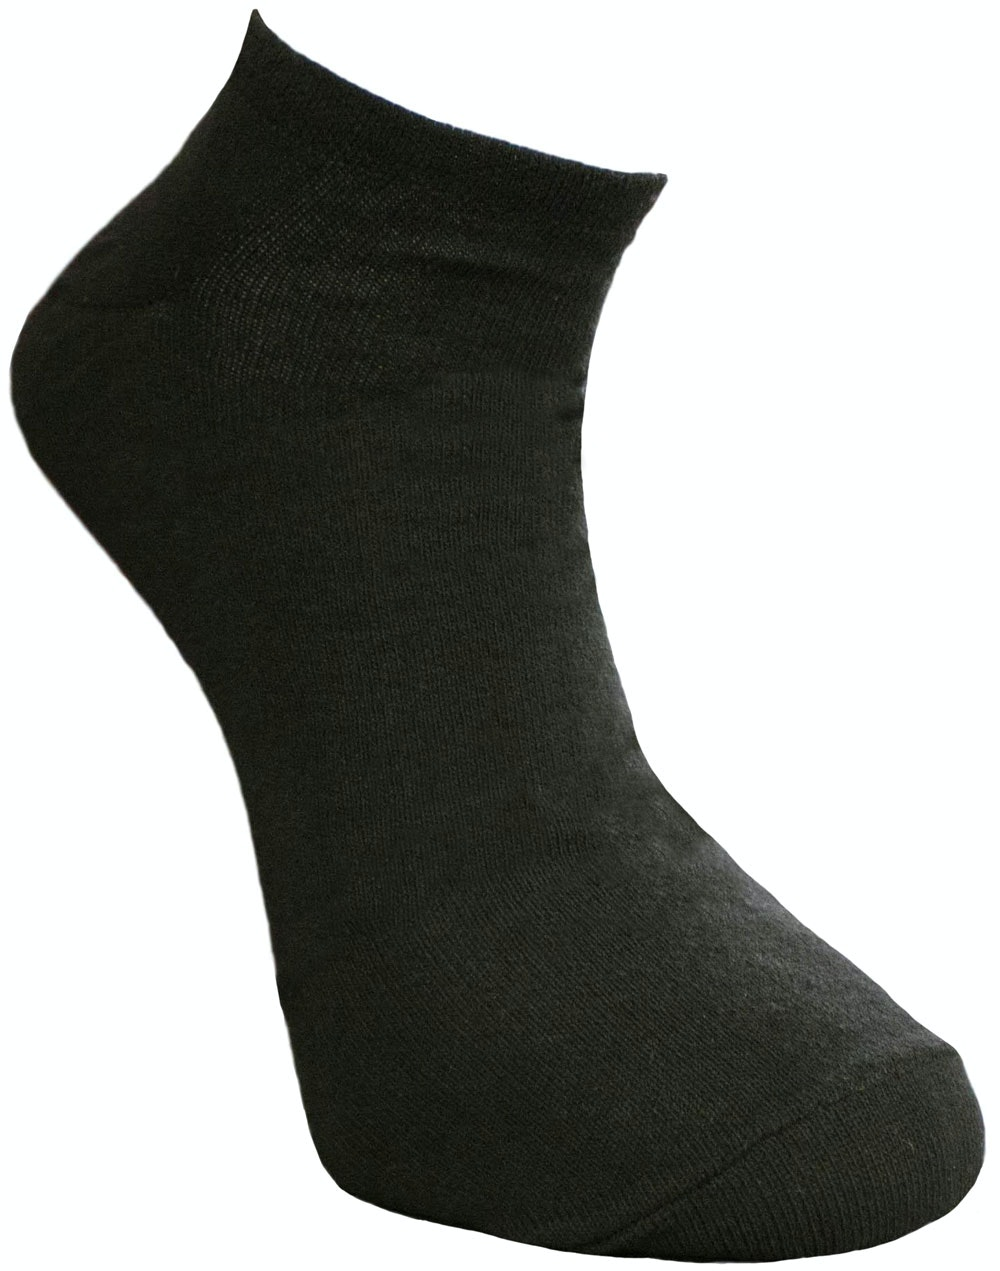 Big Foot Trainer Socks Black